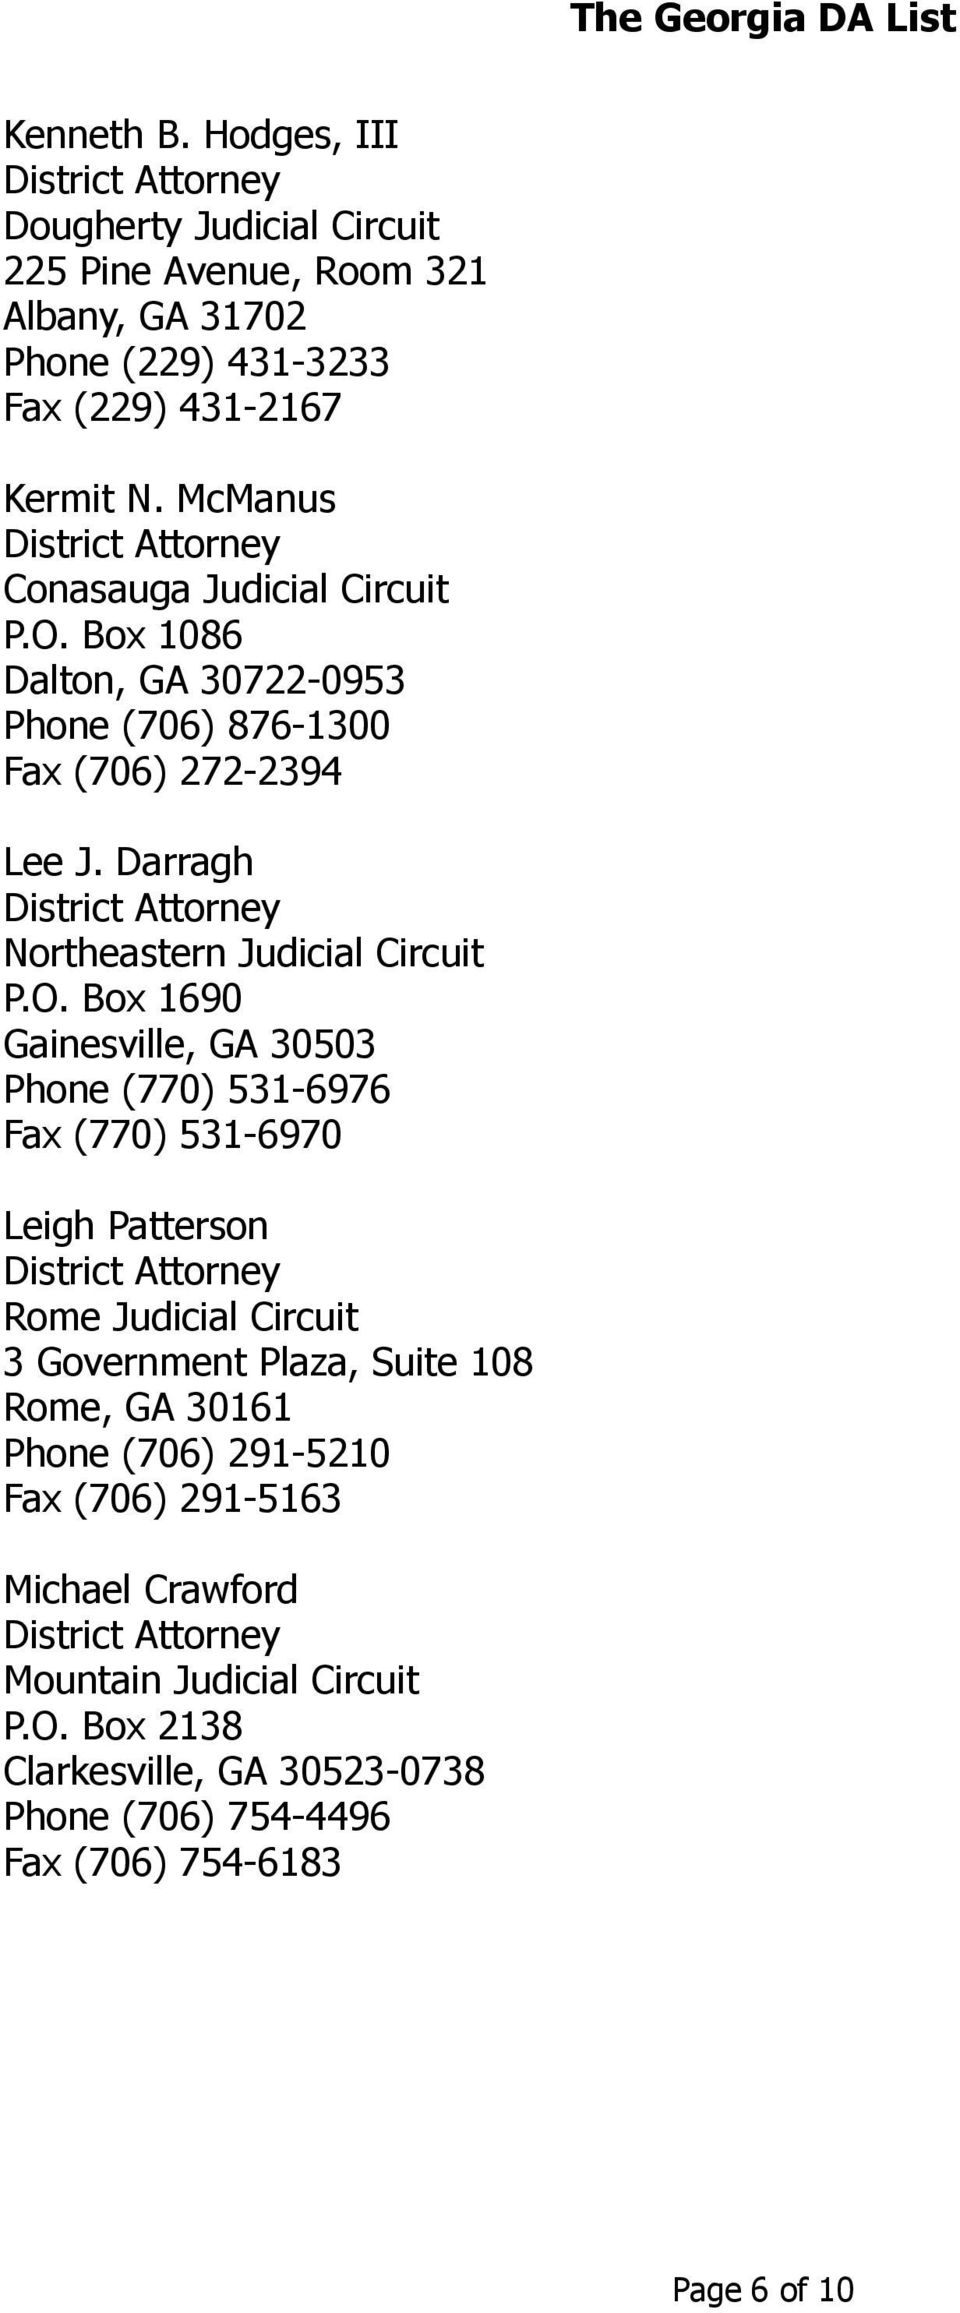 O. Box 1690 Gainesville, GA 30503 Phone (770) 531-6976 Fax (770) 531-6970 Leigh Patterson Rome Judicial Circuit 3 Government Plaza, Suite 108 Rome, GA 30161